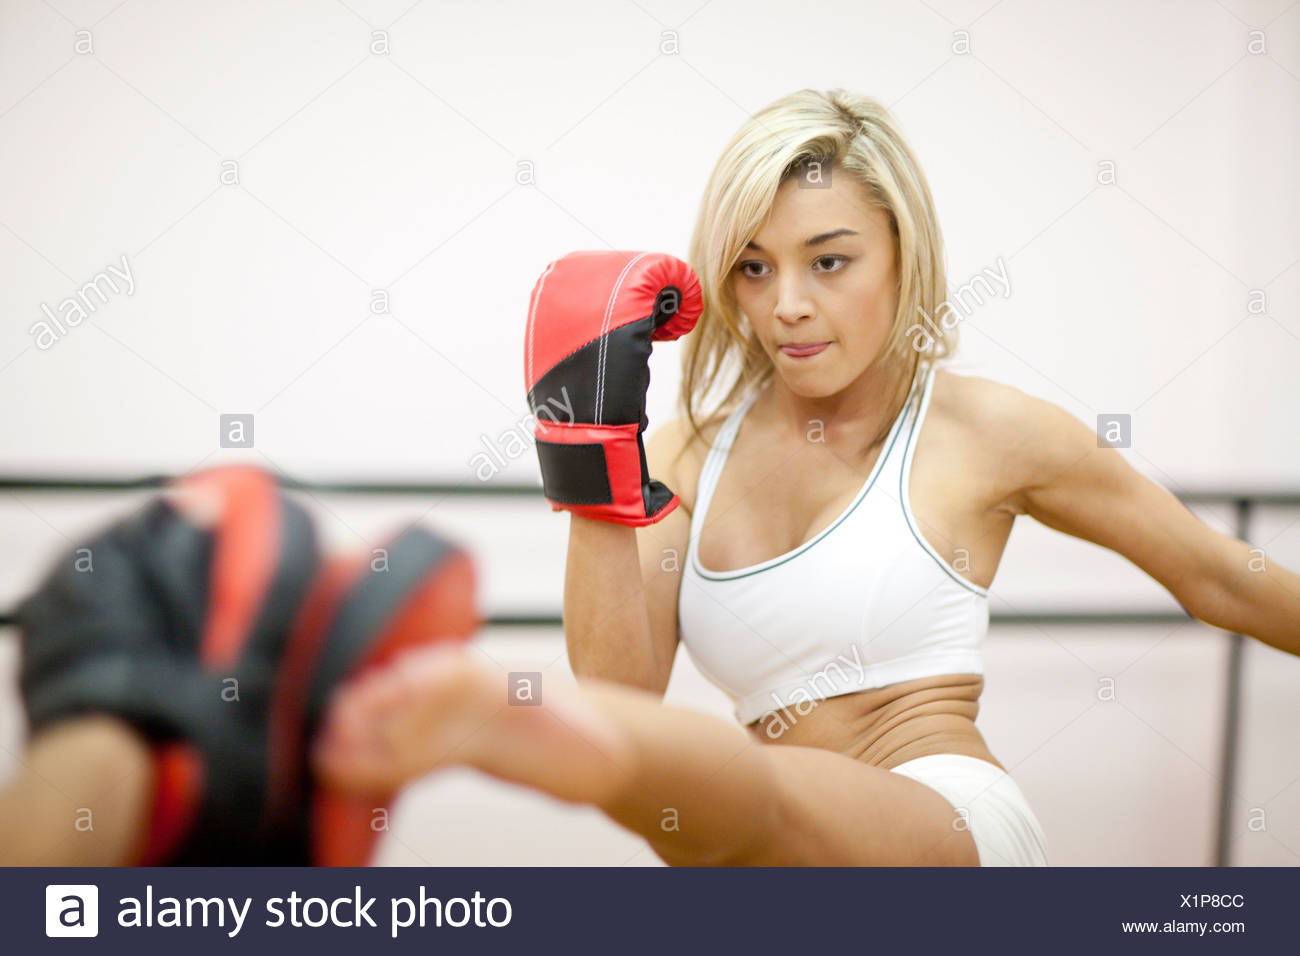 Young woman kickboxing in gym - Stock Image